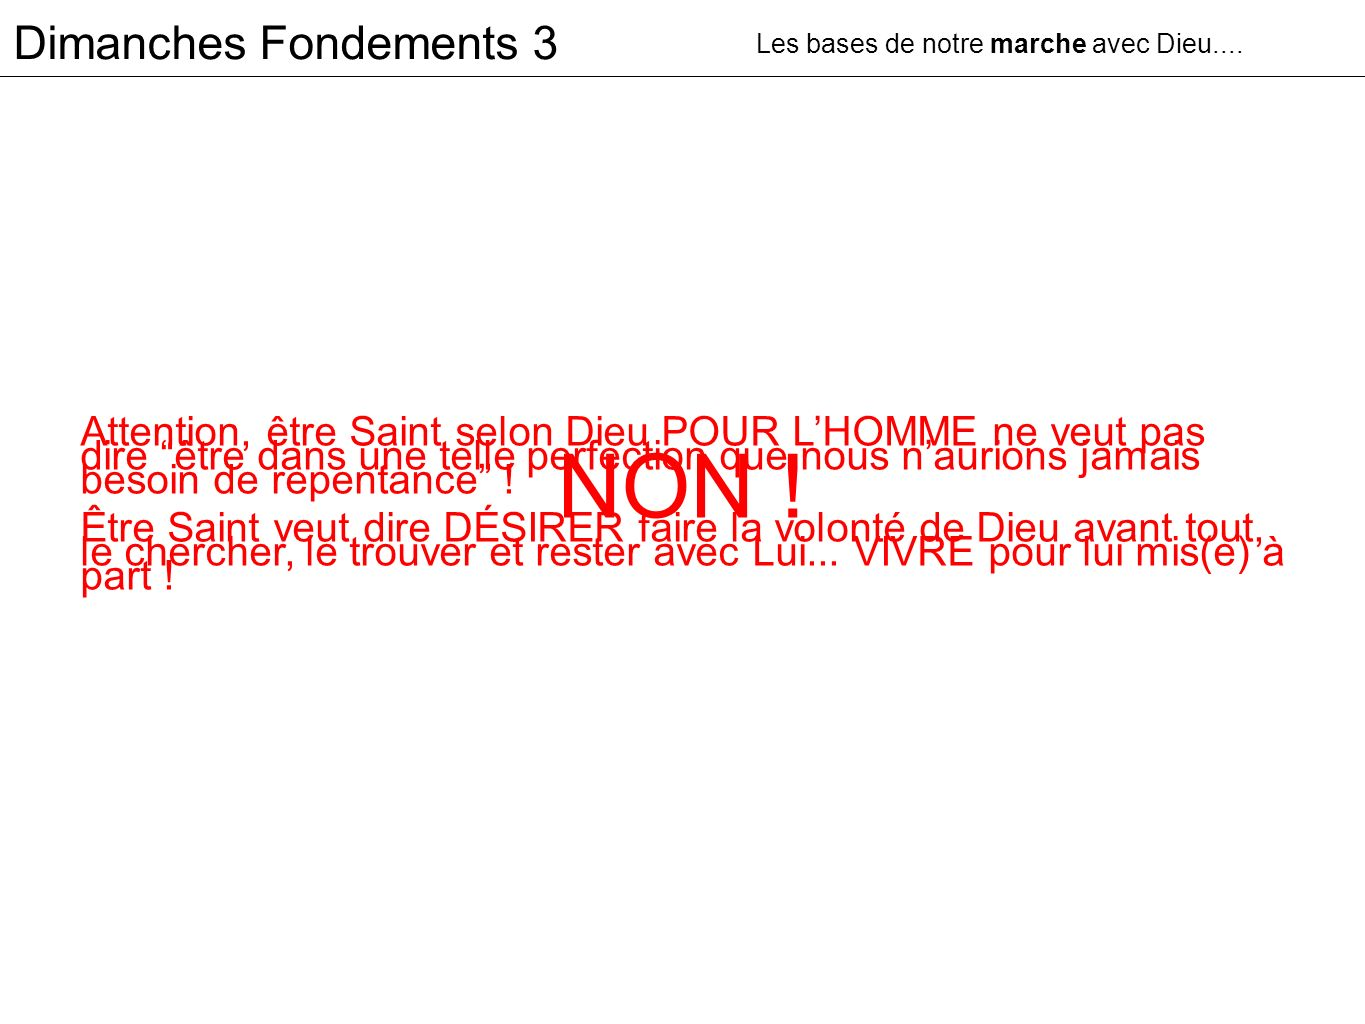 NON ! Dimanches Fondements 3